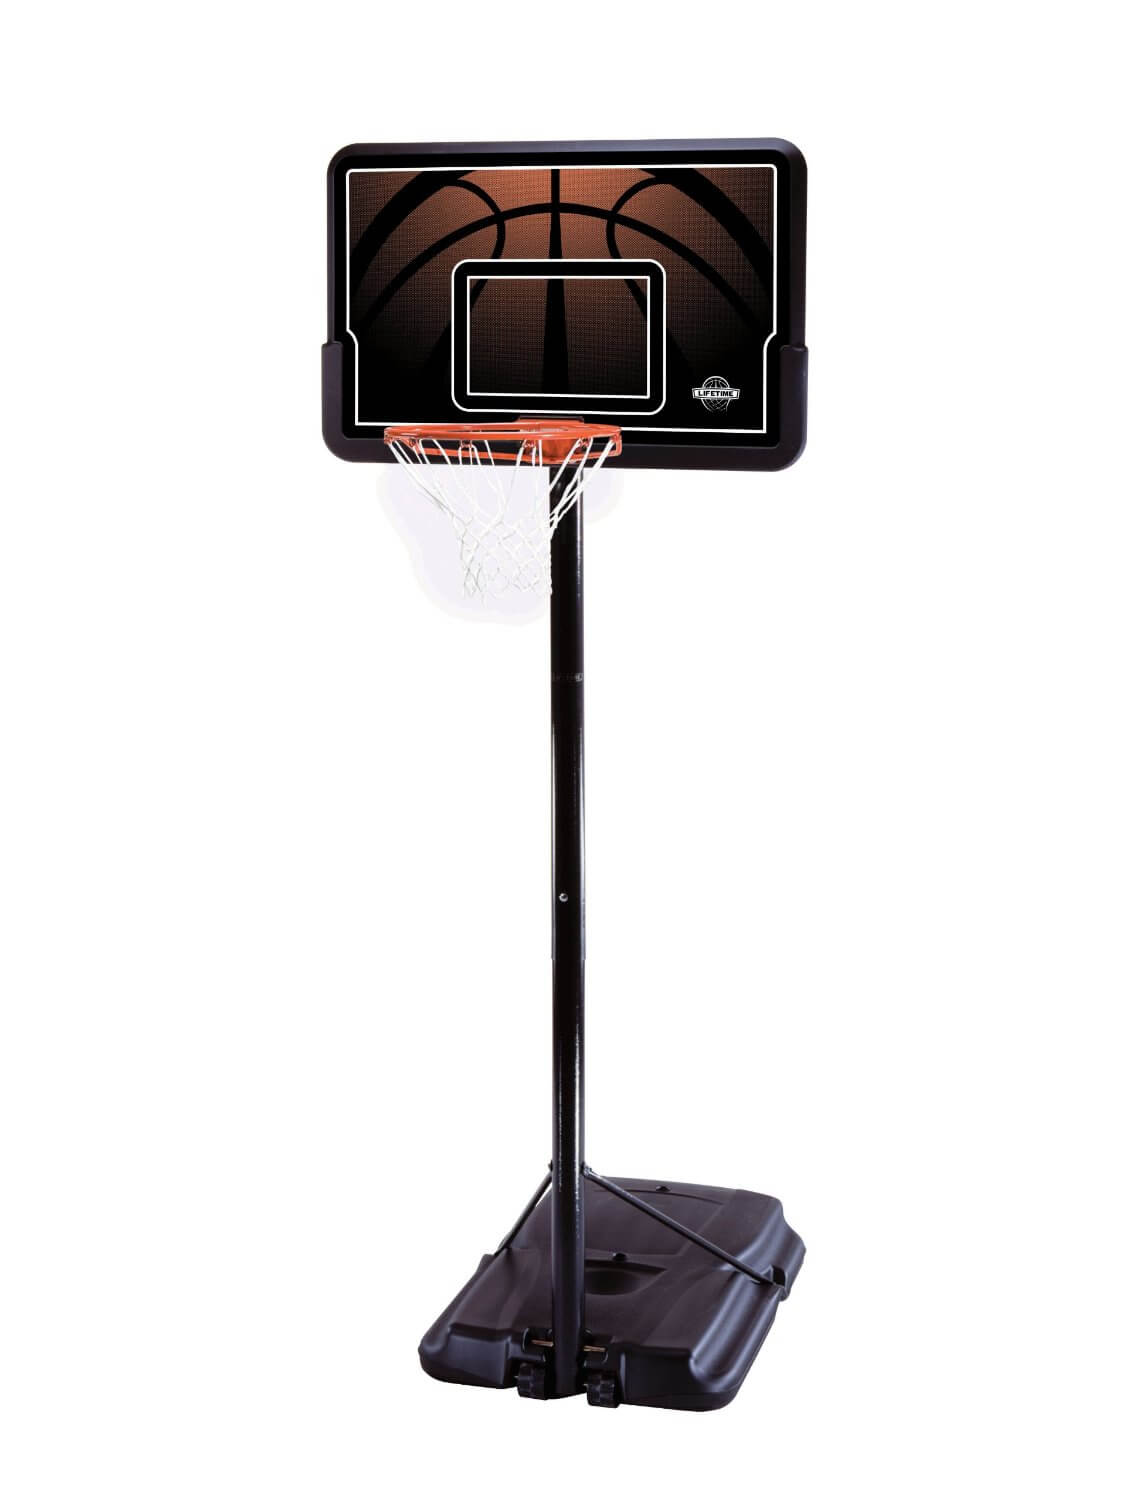 Citaten Hoop Hoopz : Lifetime portable basketball system review